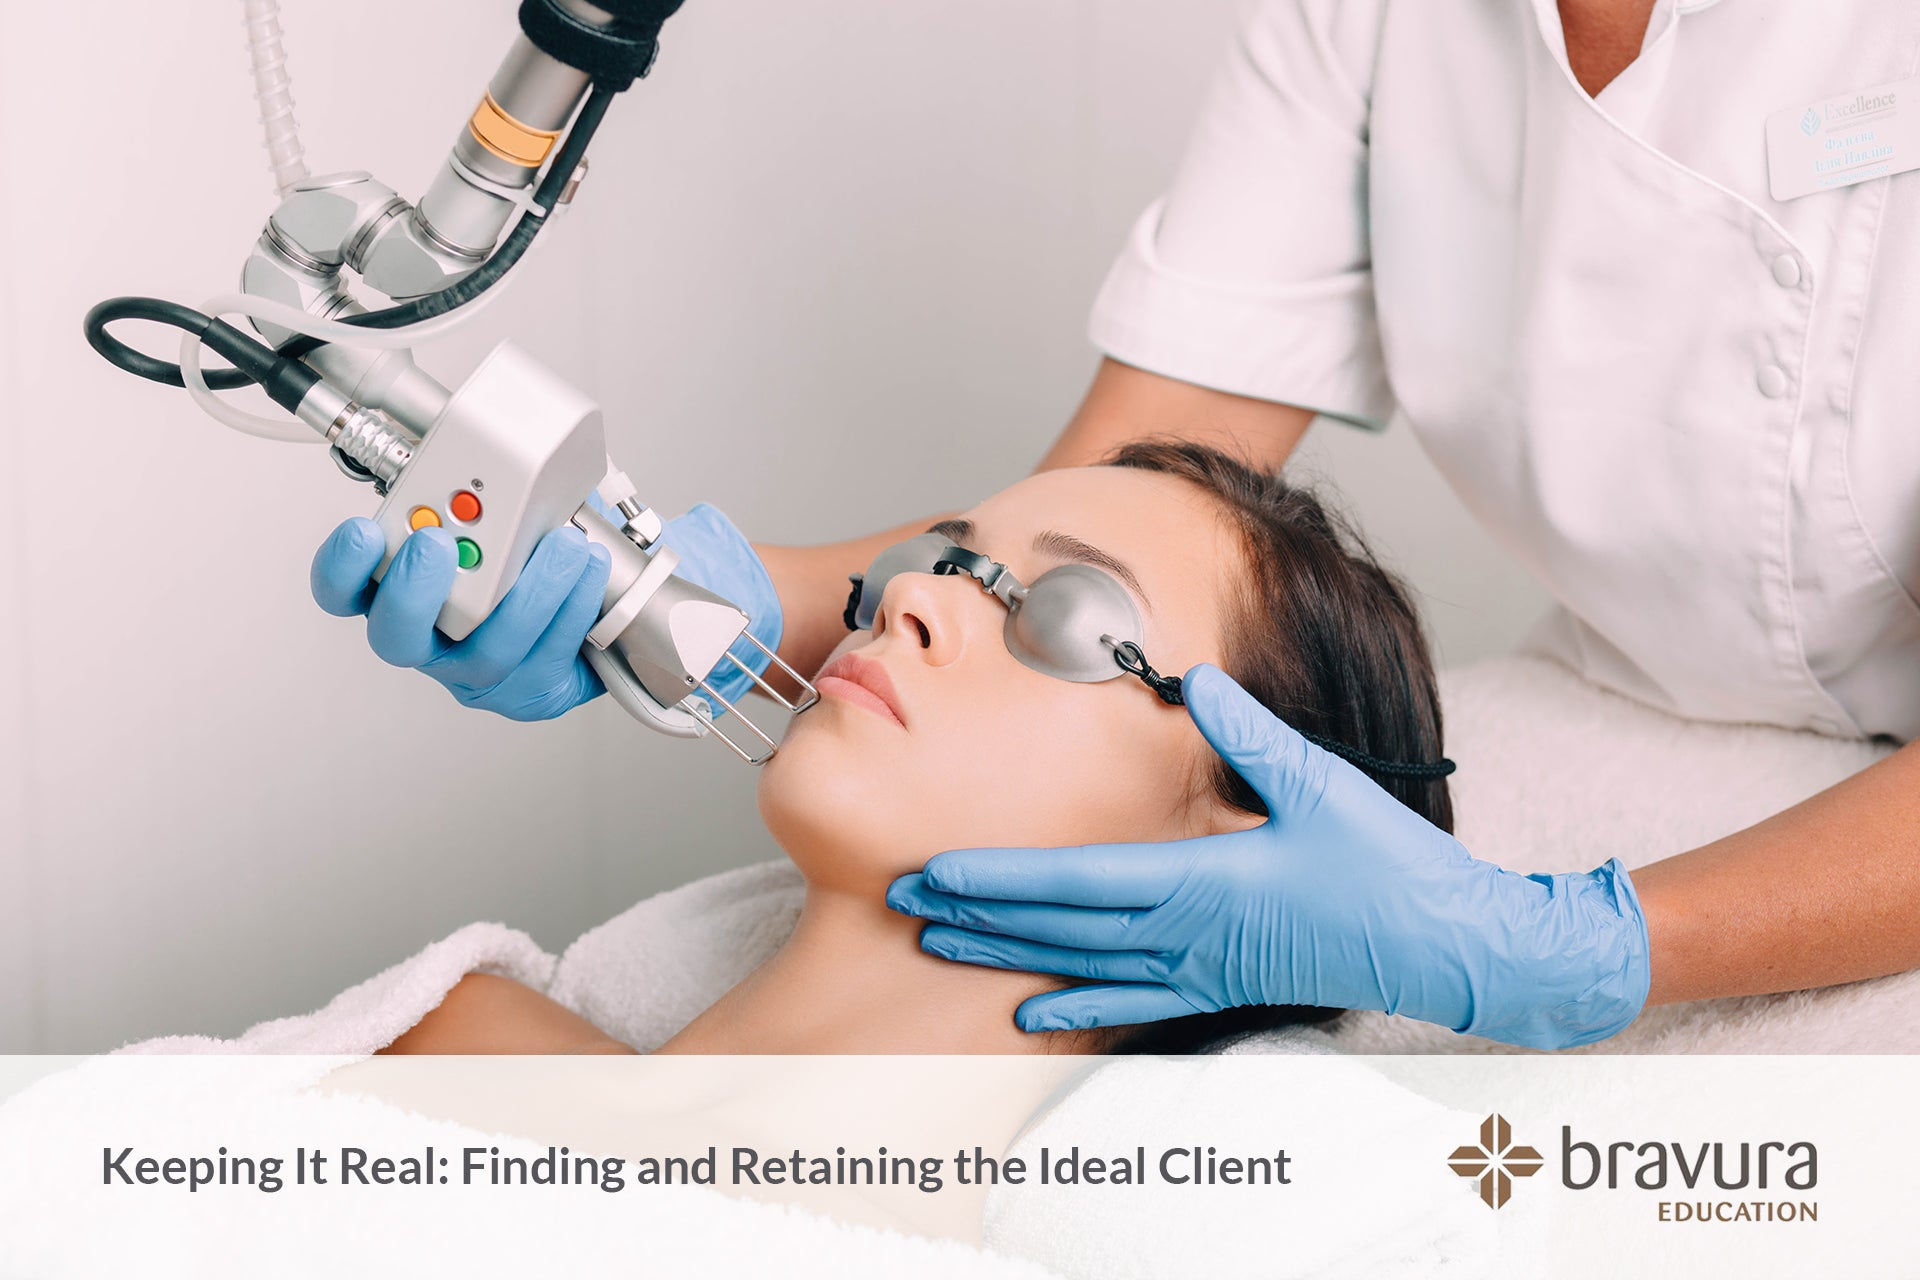 Tips for laser clinics